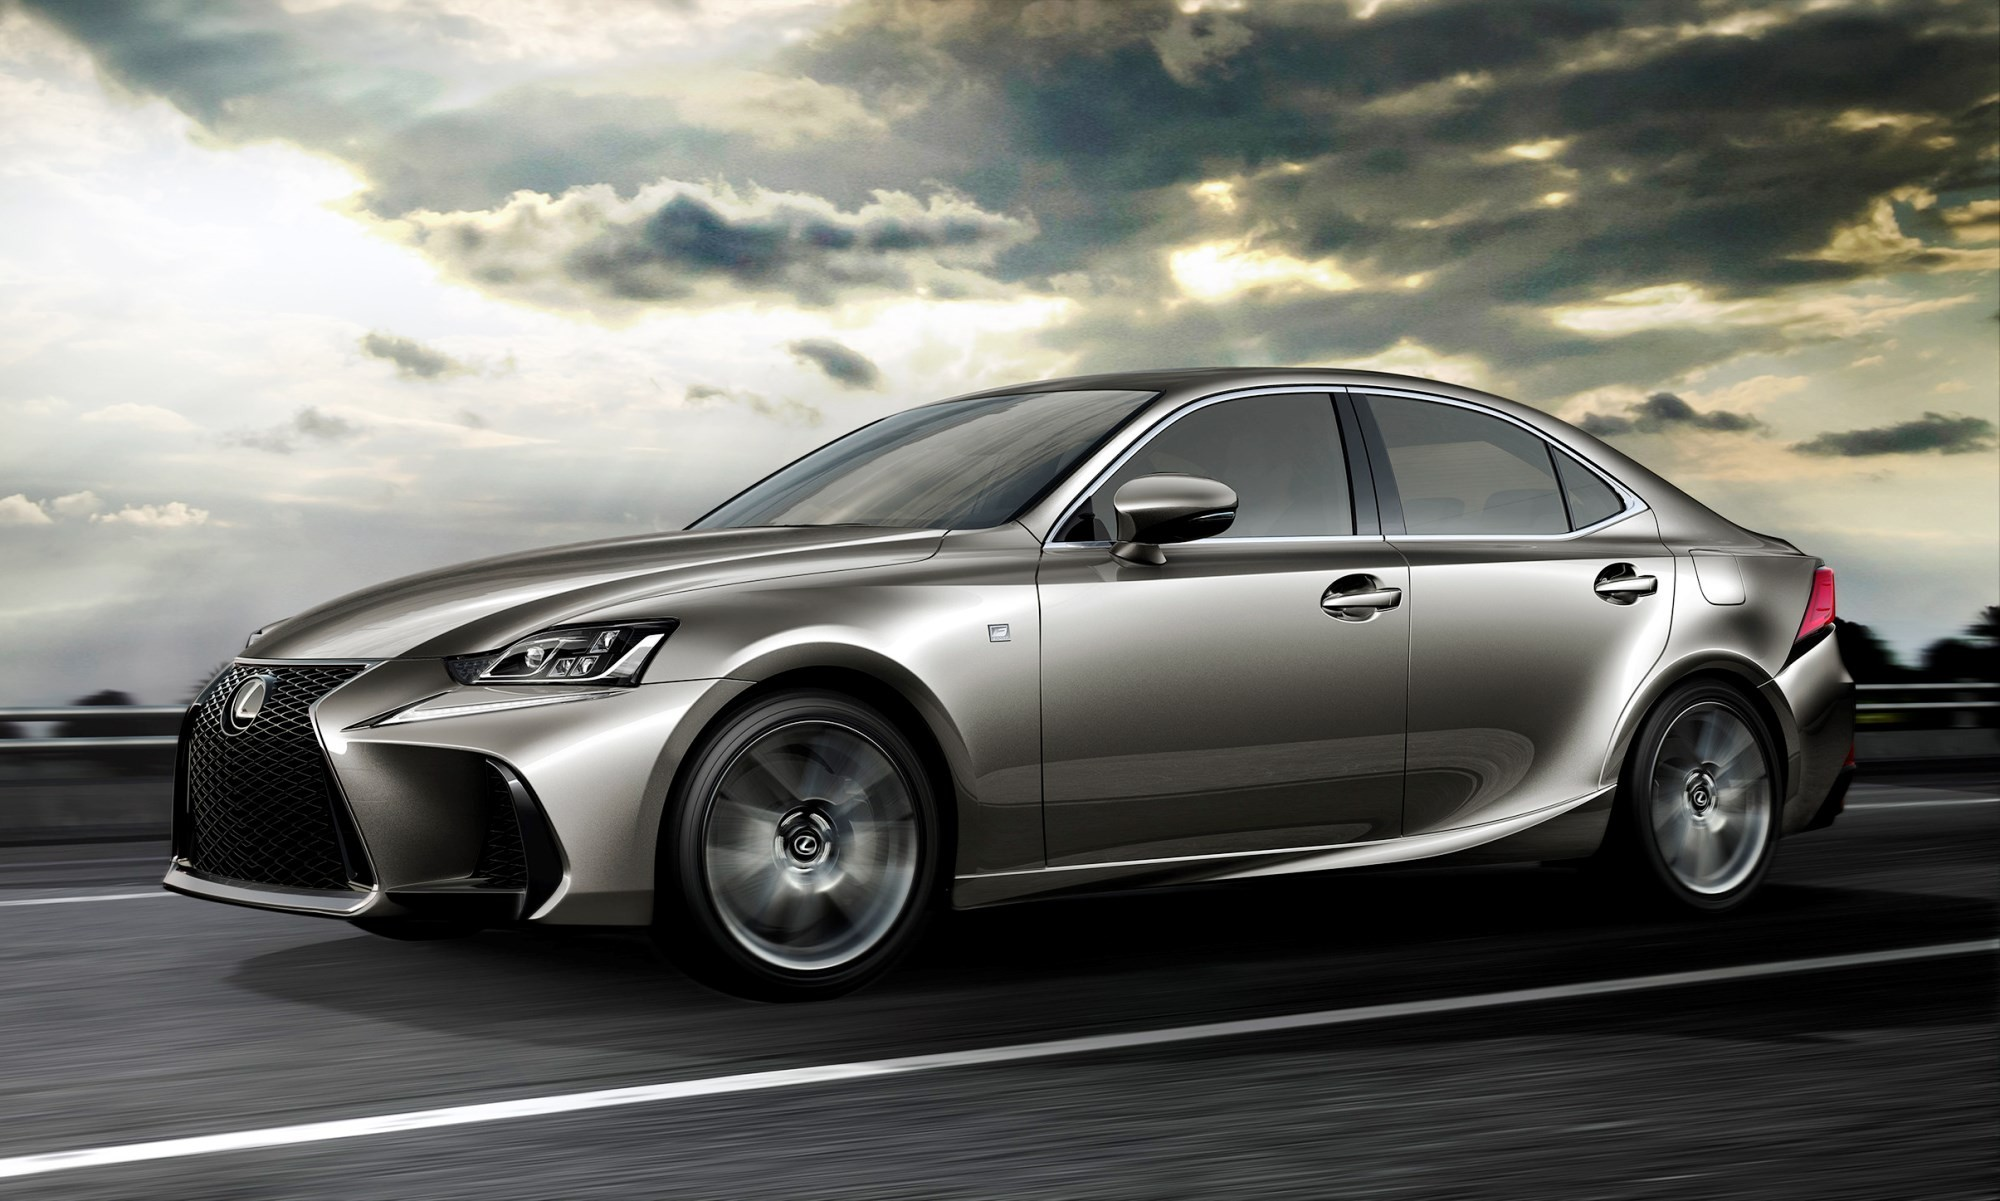 Lexus IS 350 F Sport